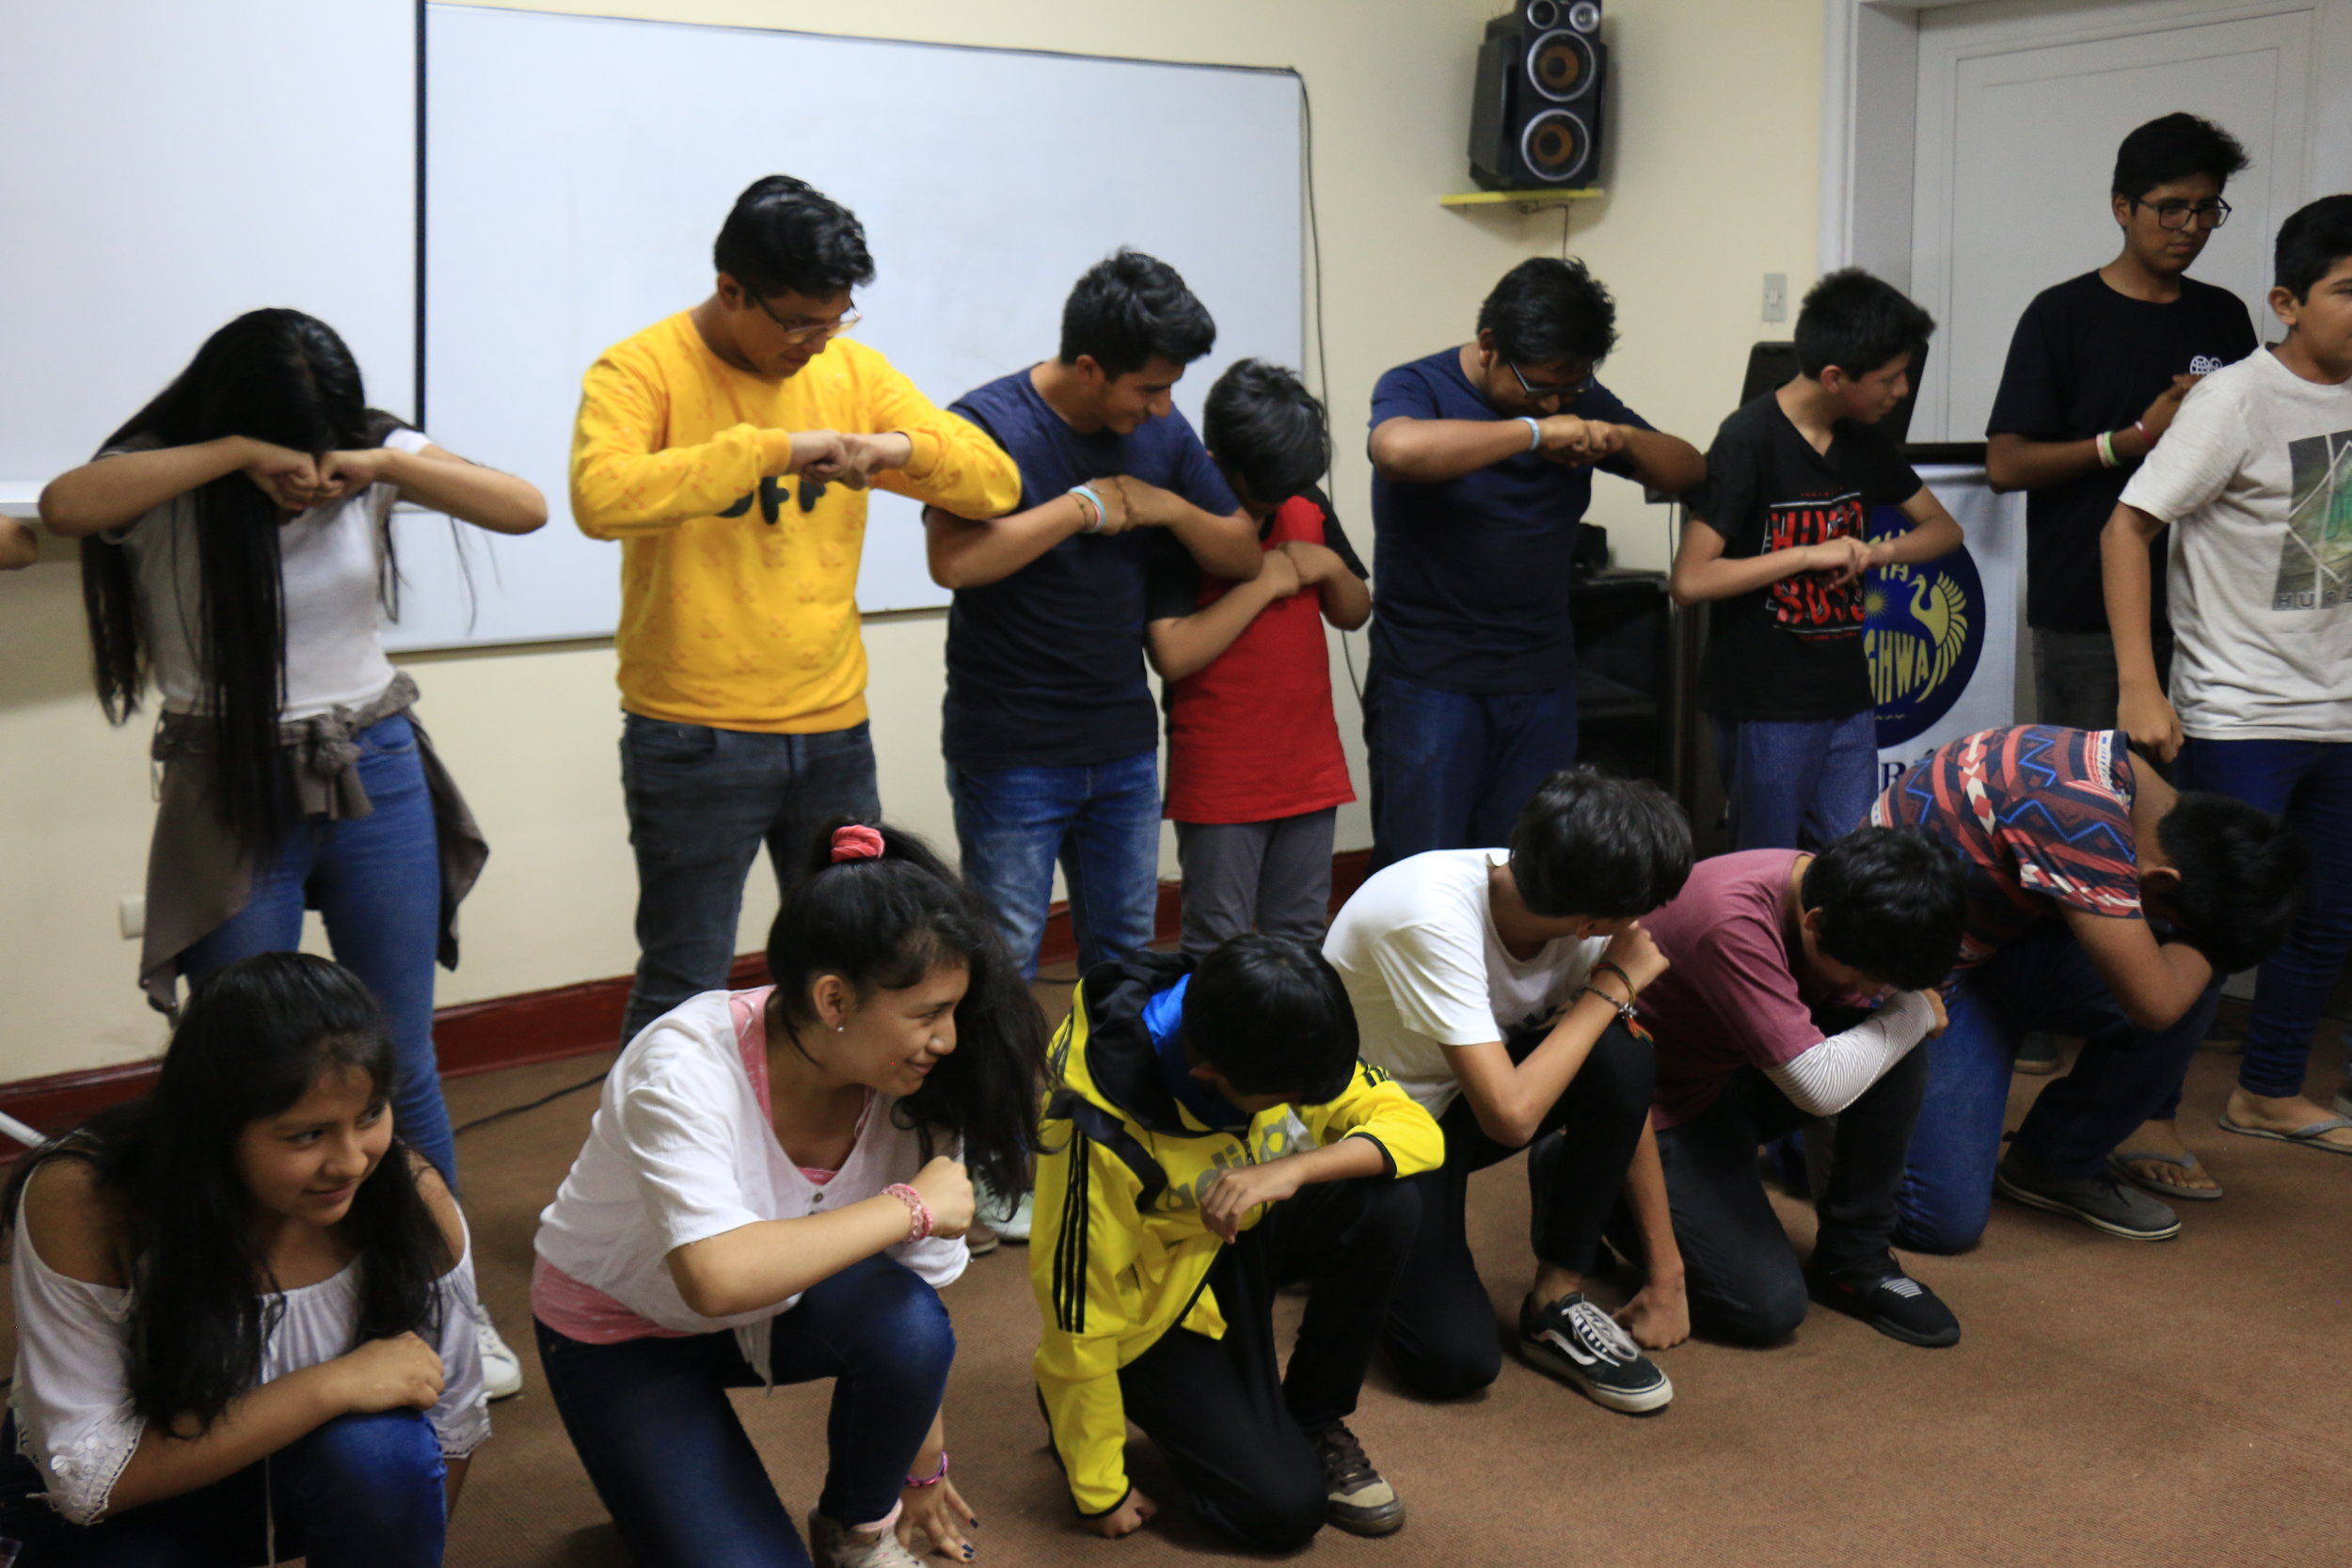 High School Workshop Group Performing a Chant